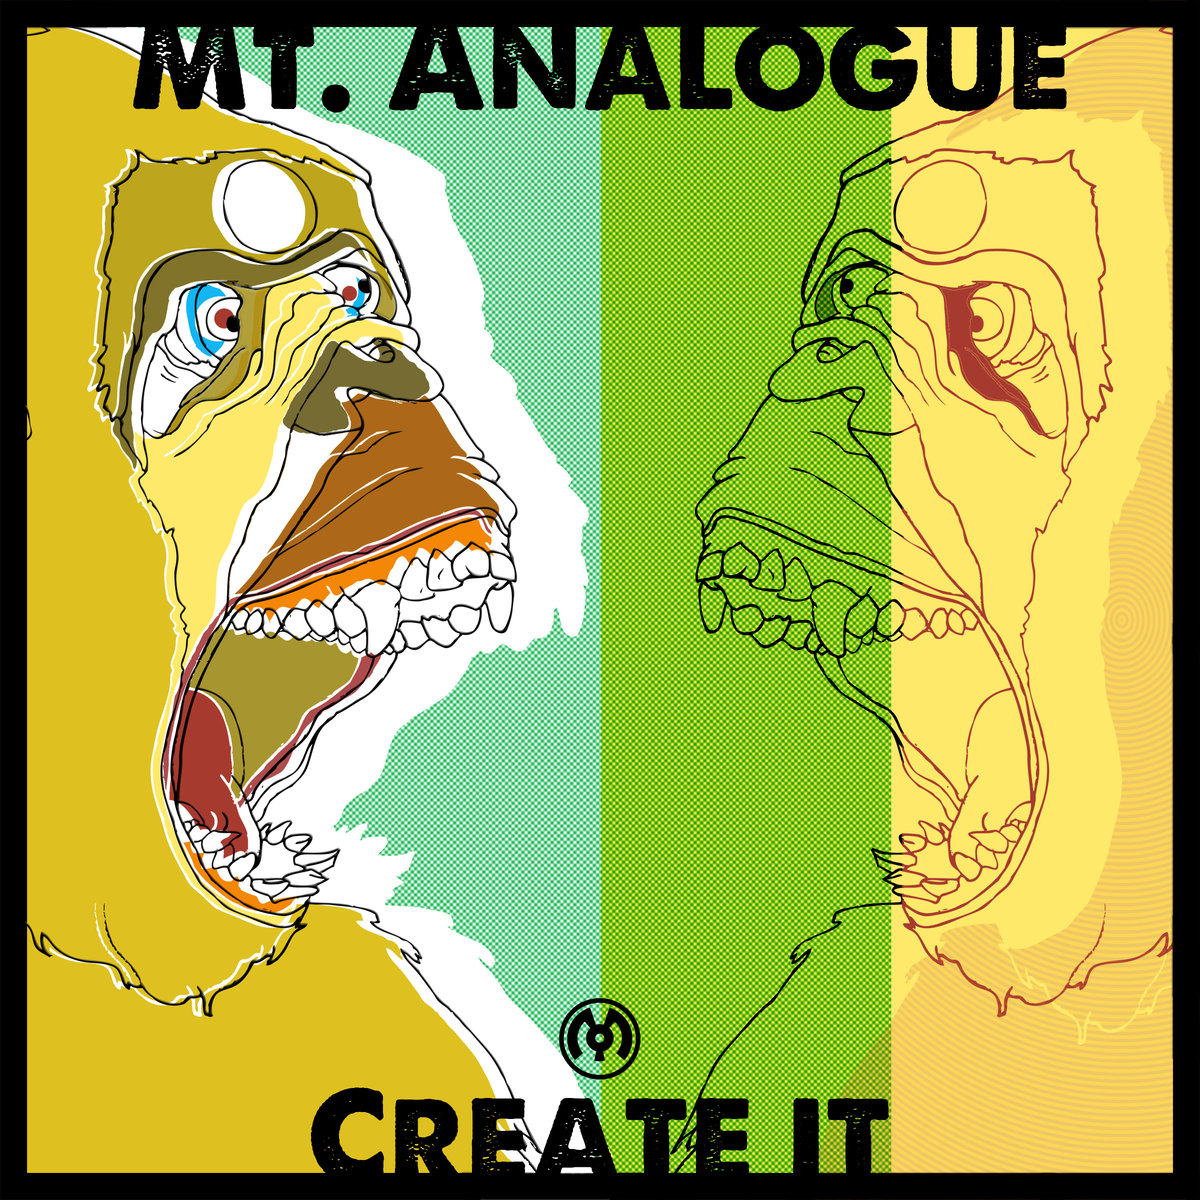 Bib Wingus feat. Mt. Analogue - Straight Whistle Trippin @ 'Create It' album (electronic, dubstep)